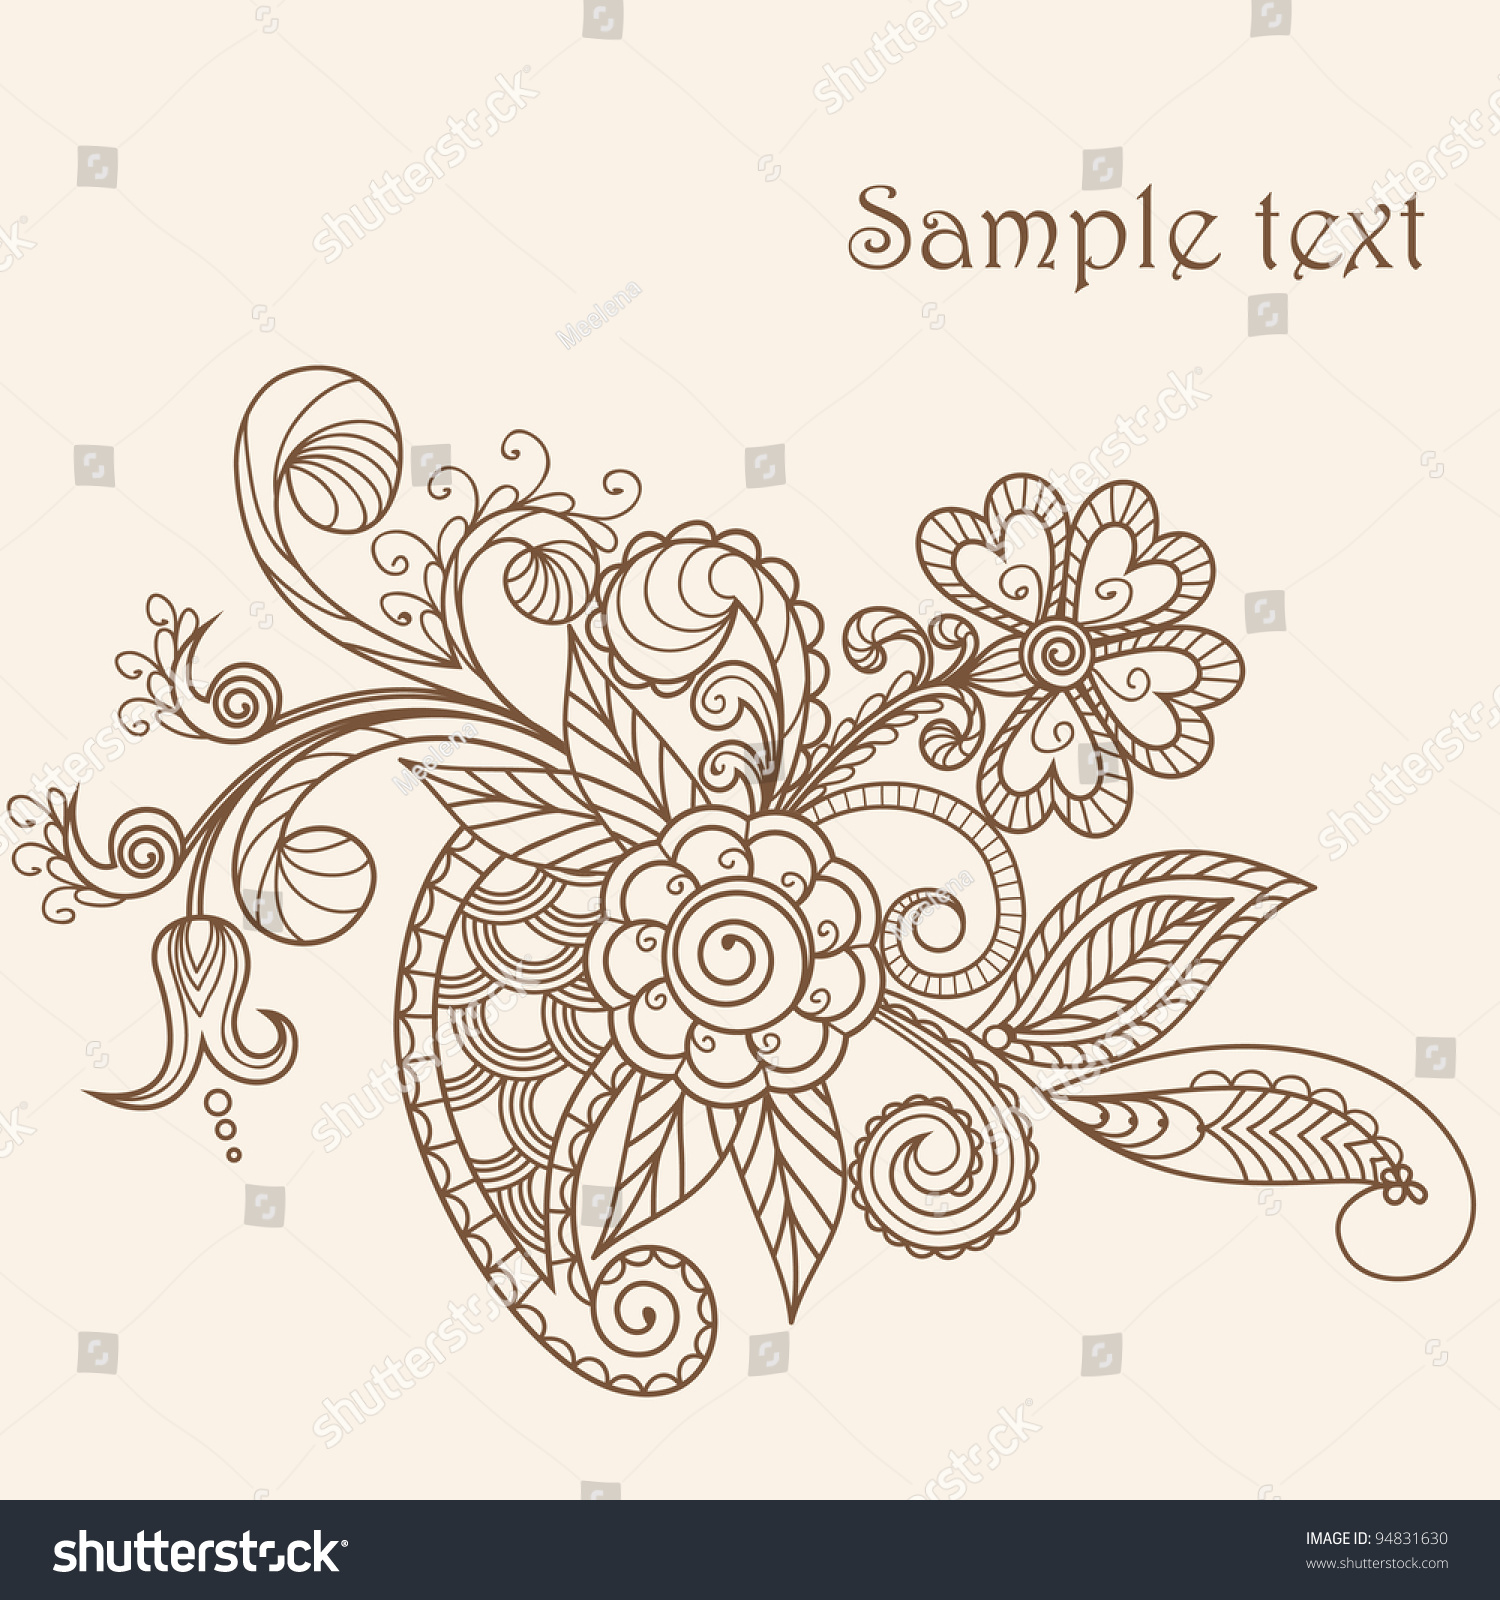 Mehndi Henna Hand Greeting Cards : Hand drawn abstract henna mehndi flowers and